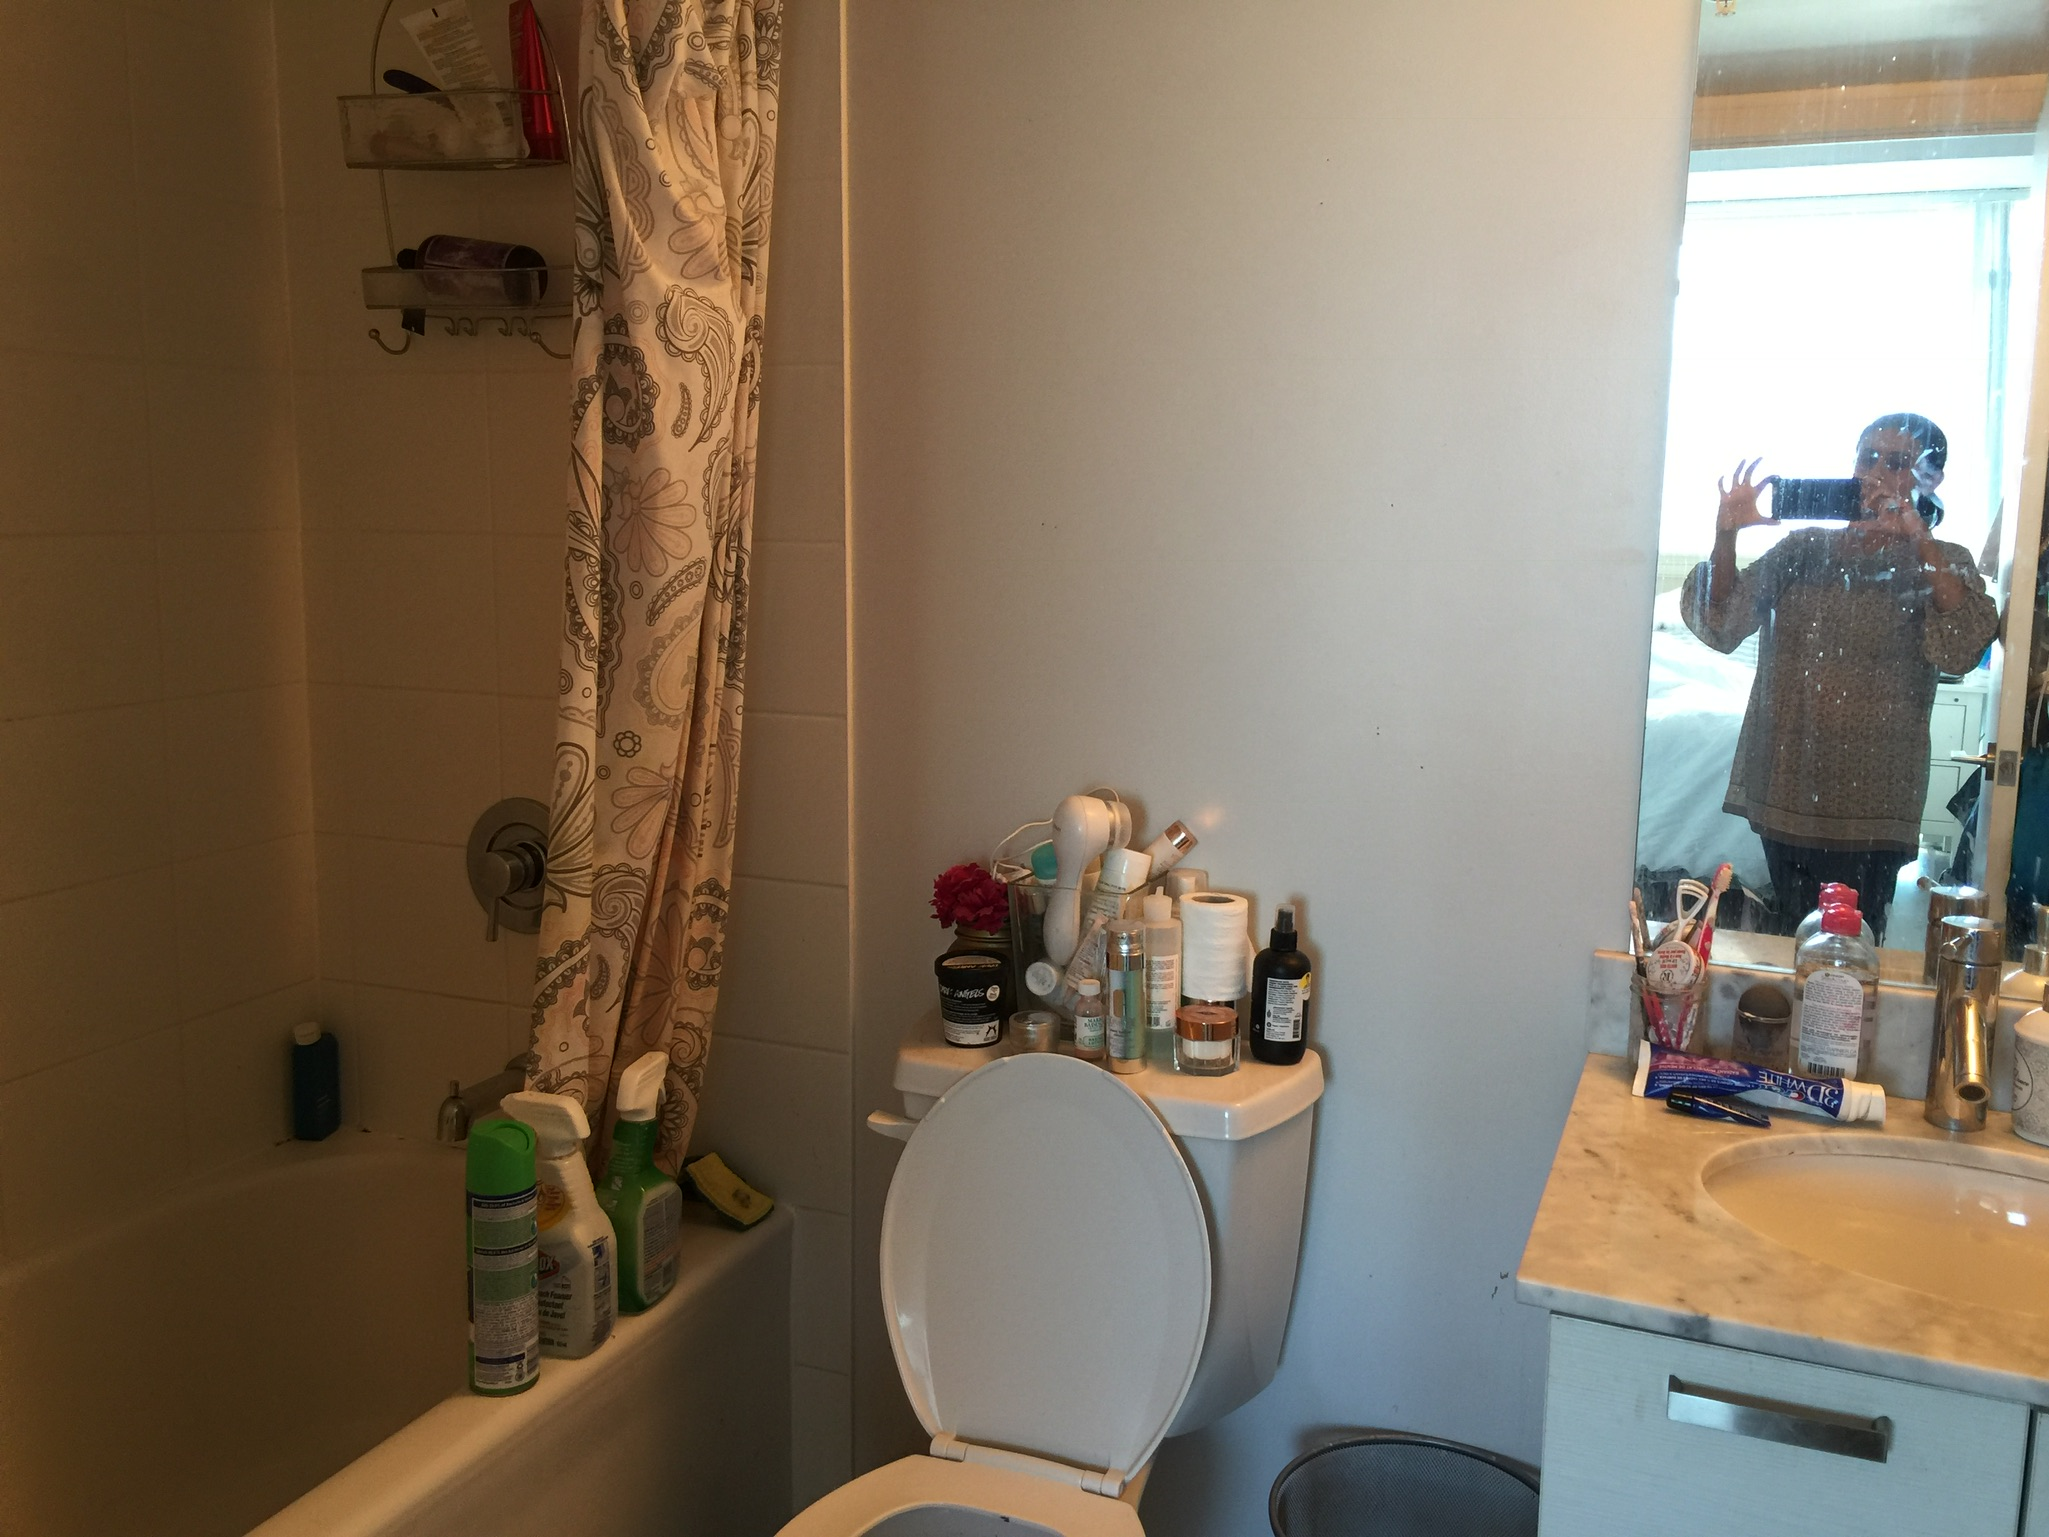 Condo Staging: Before